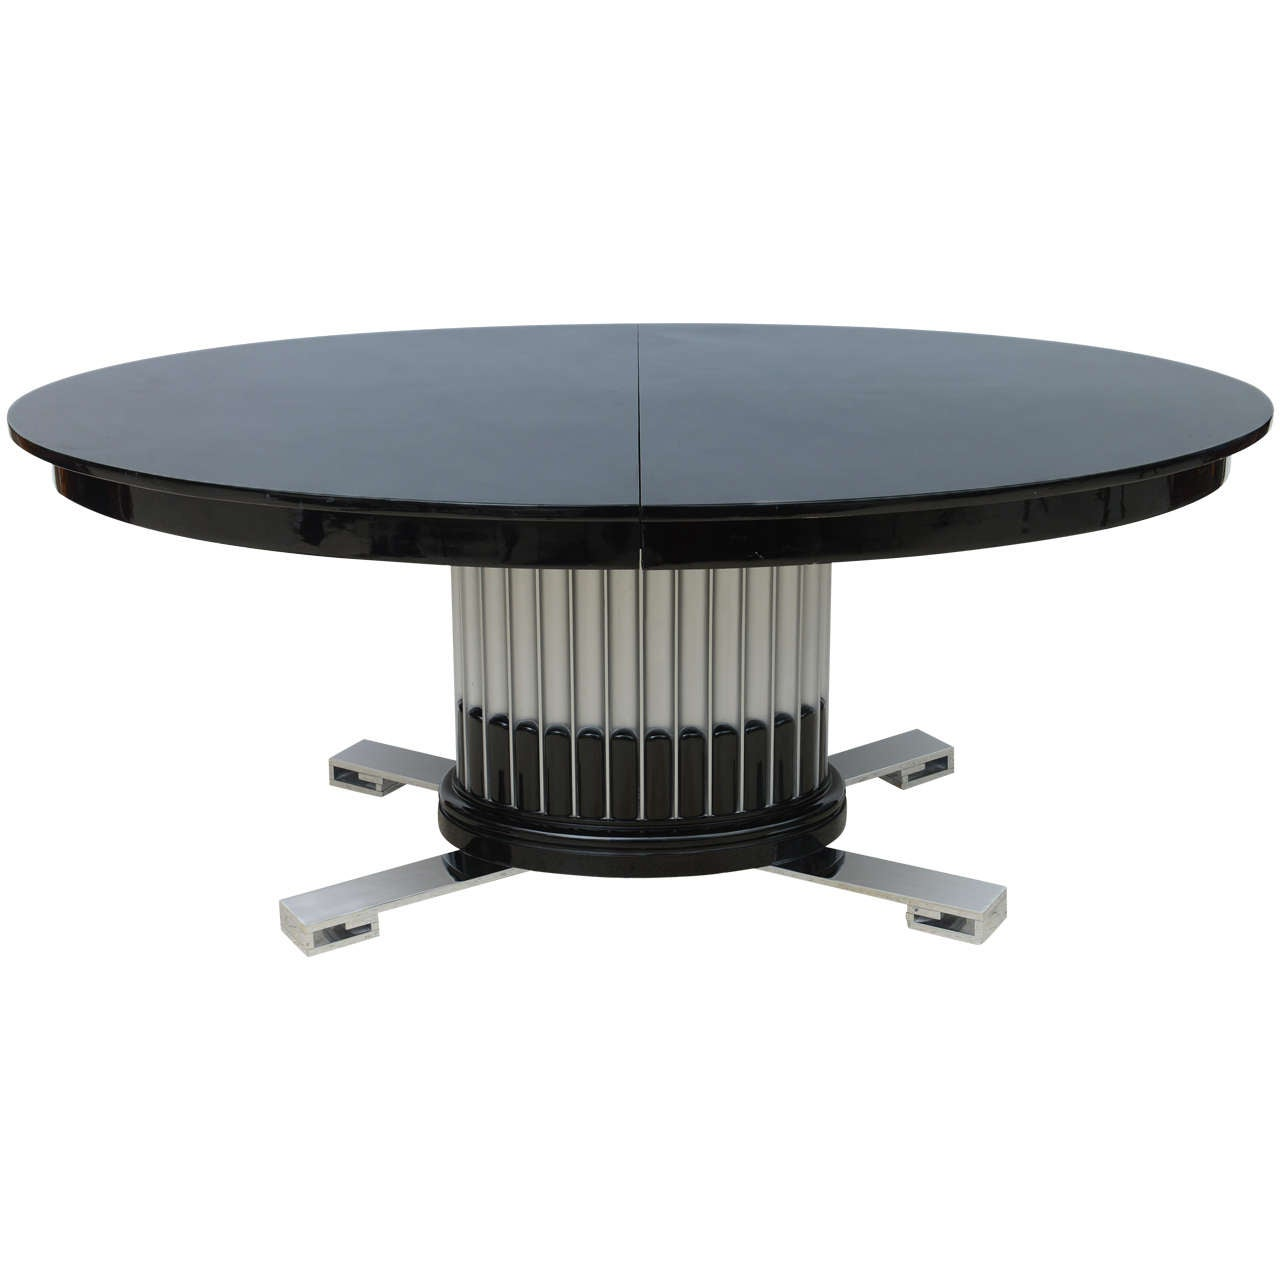 Black Lacquered, Chrome and Silver Leaf Extension Dining Table by Paul Frankl